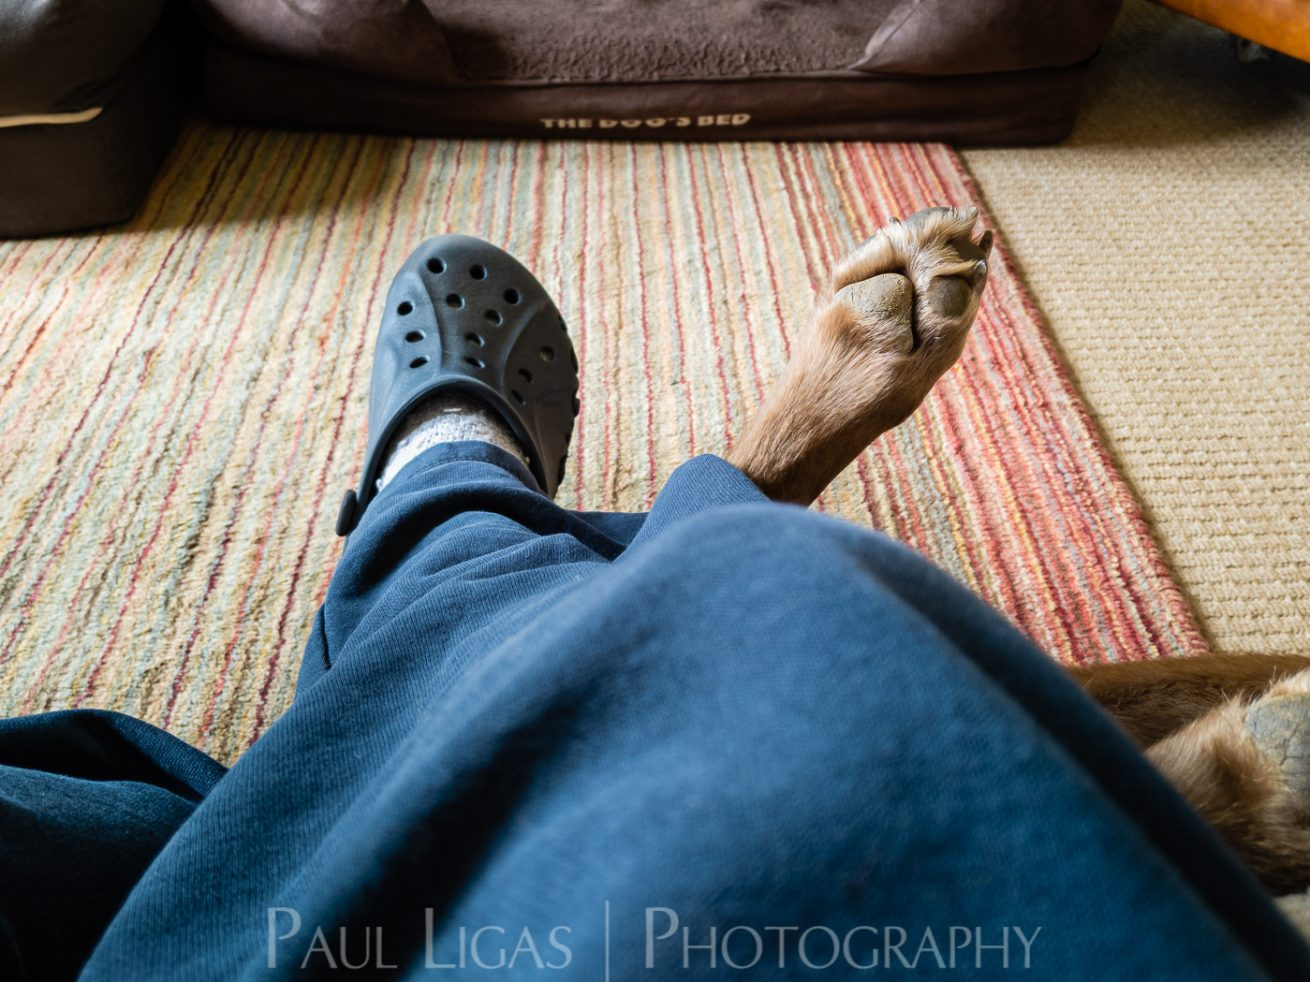 photos from inside a lockdown part 5 paul ligas photography hereford ledbury-115711